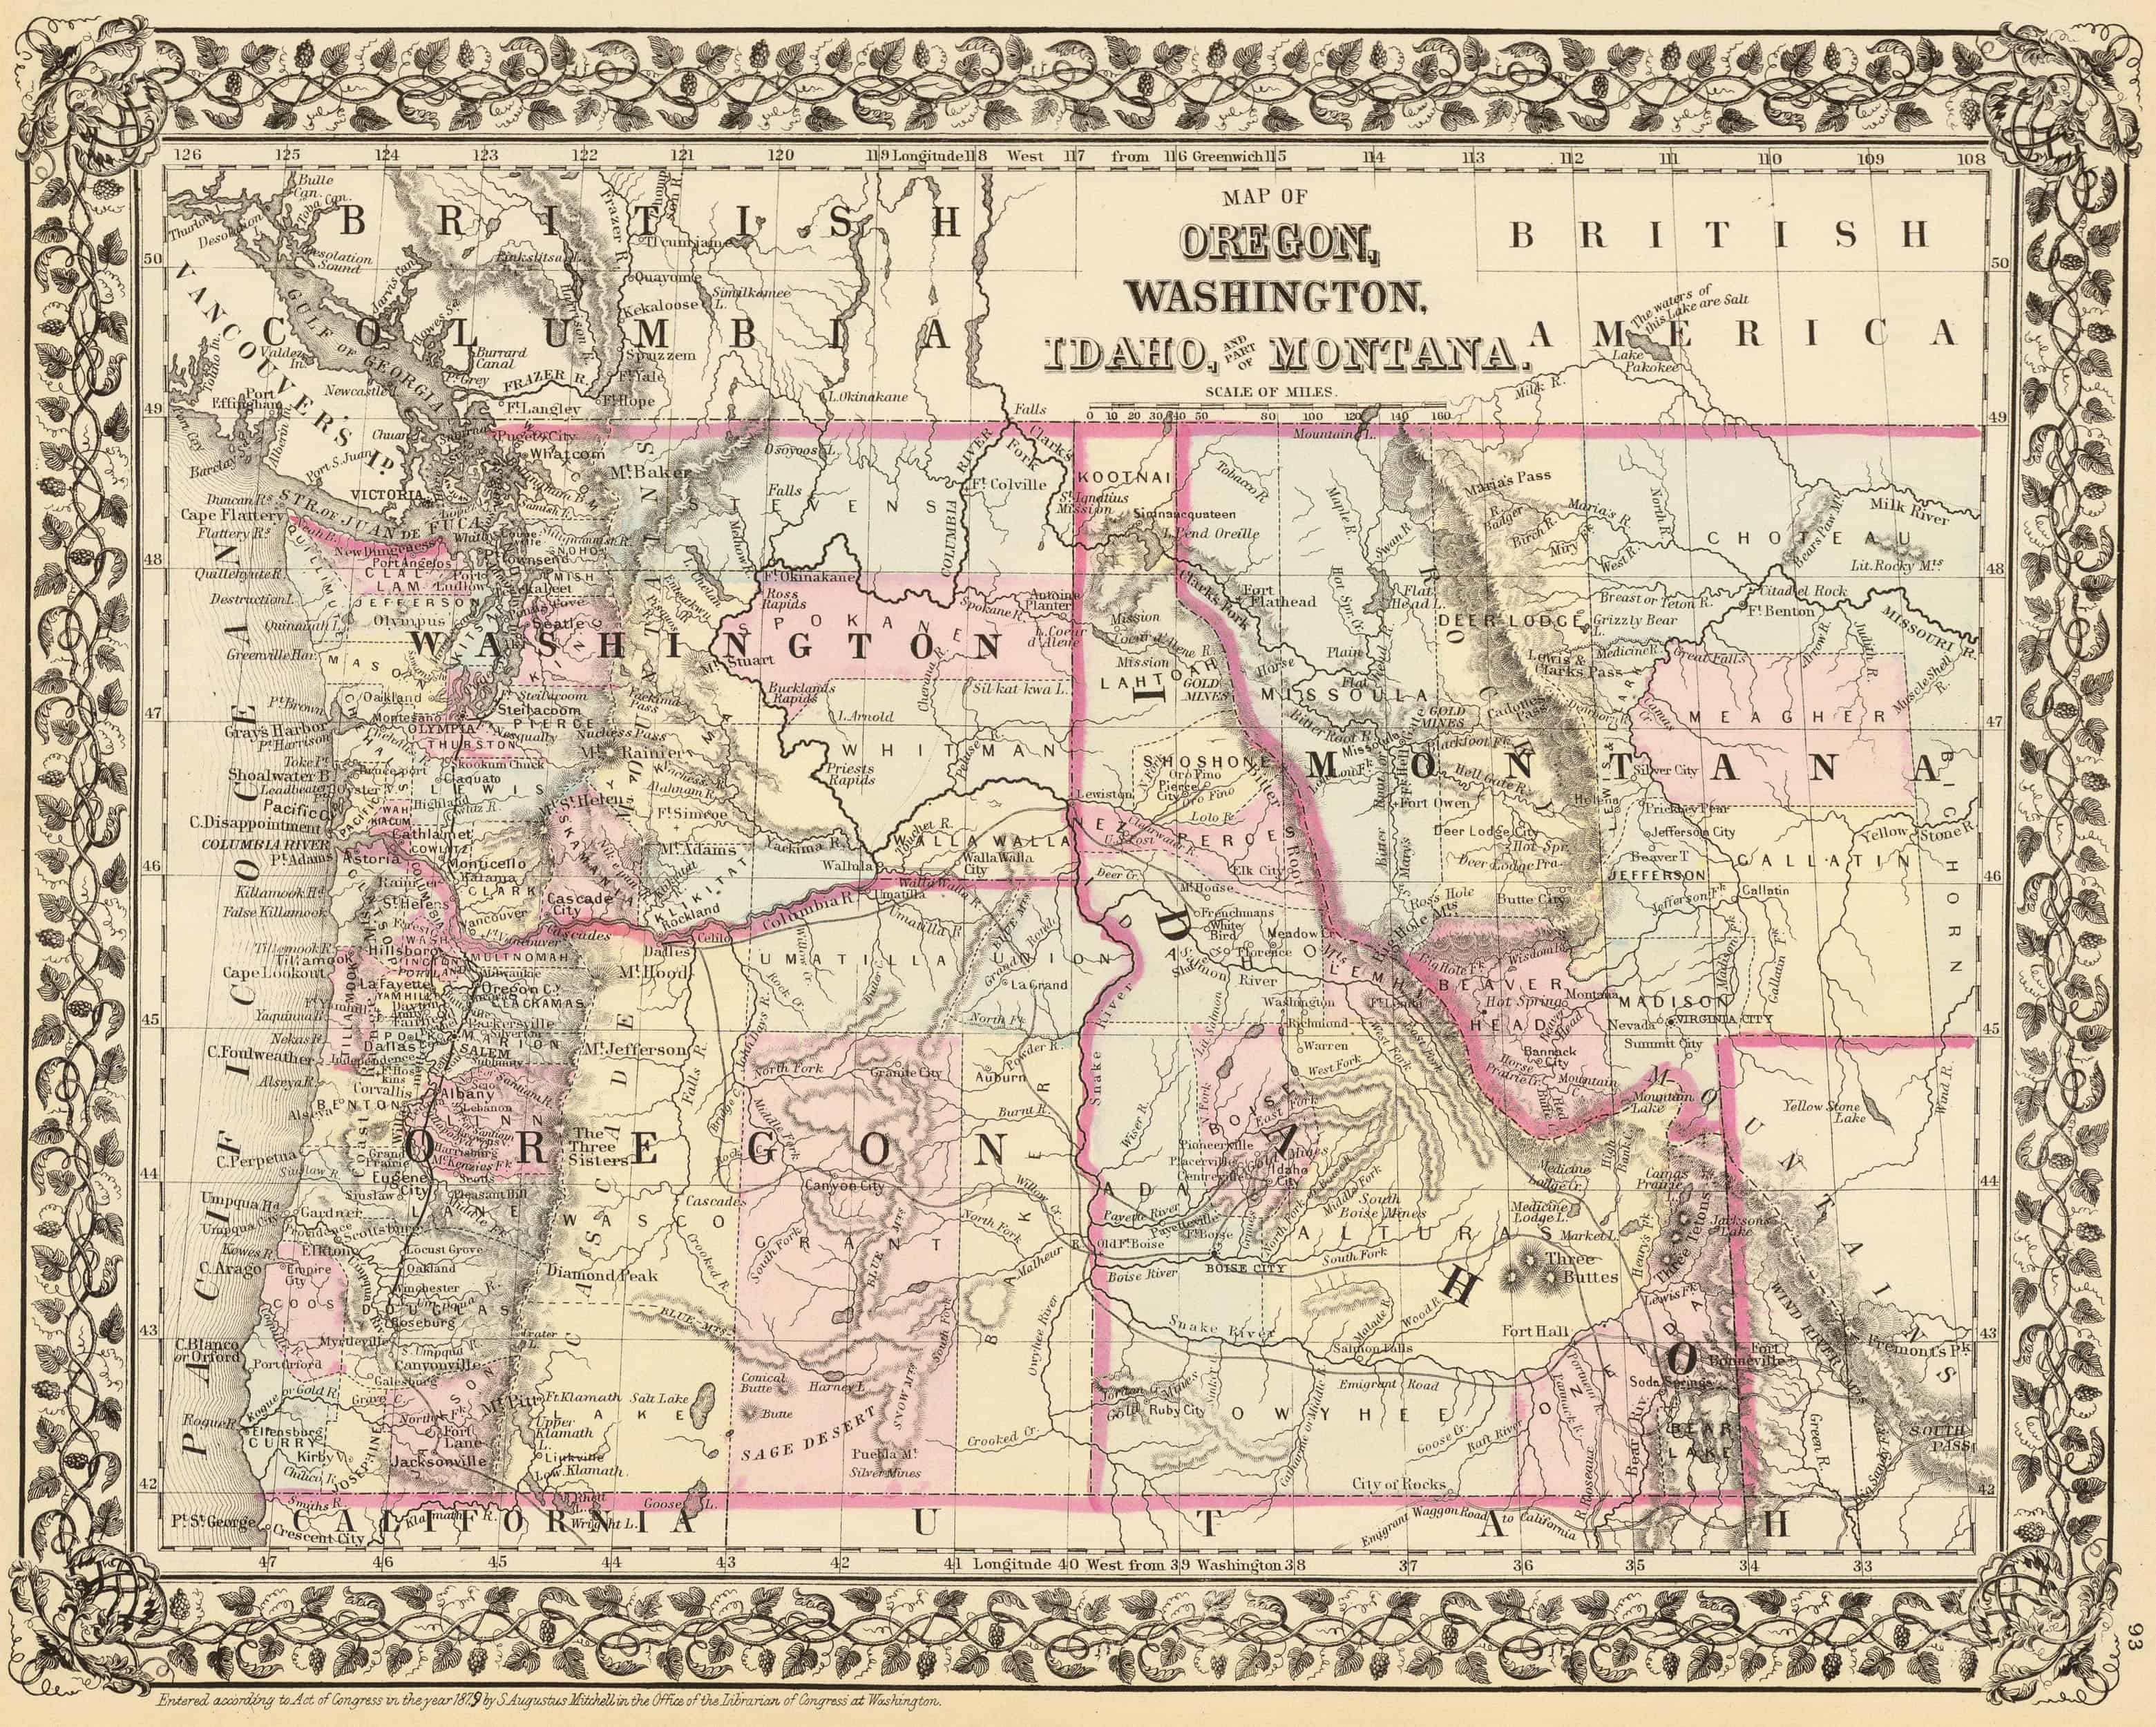 Old Historical City, County and State Maps of Montana